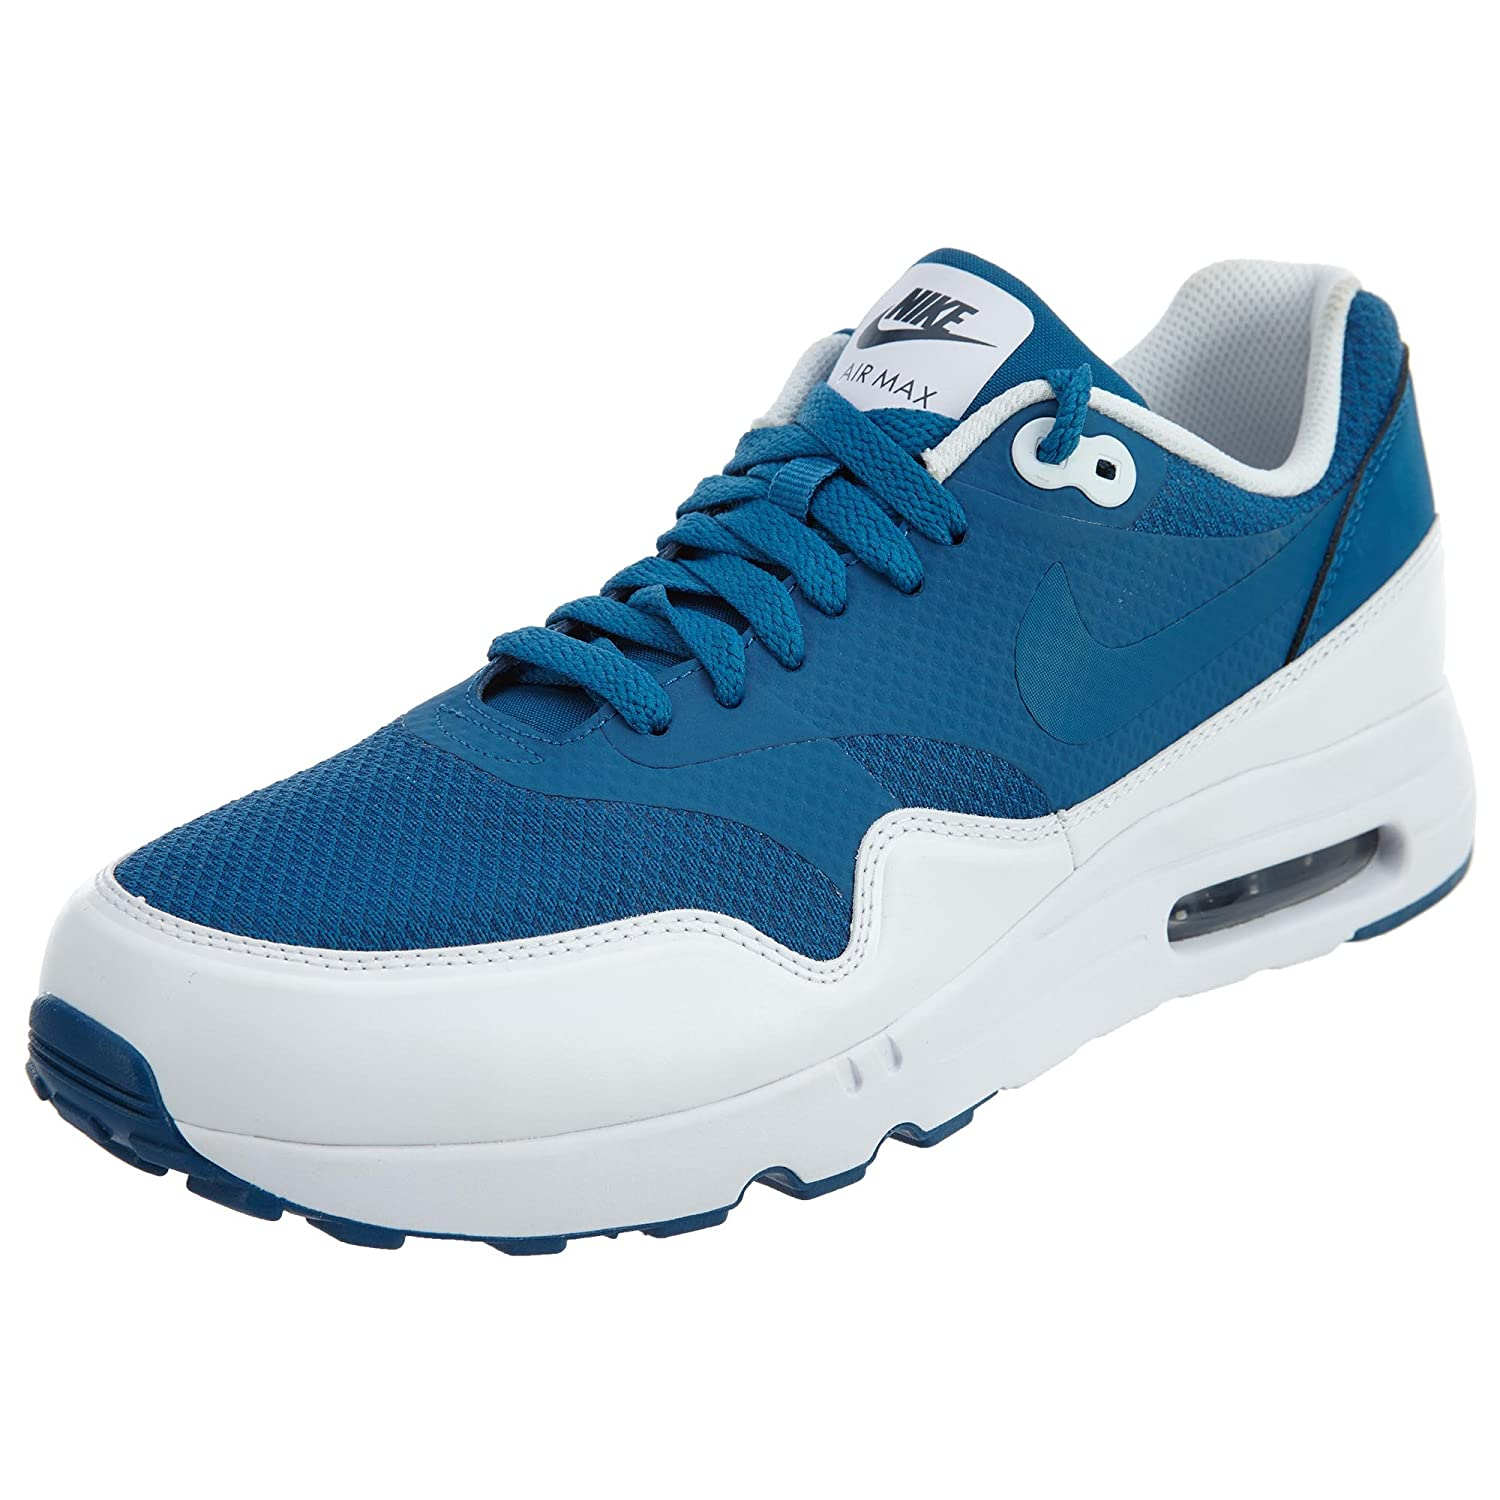 better famous brand best price Nike Men's Air Max 1 Ultra 2.0 Essential Running Shoe